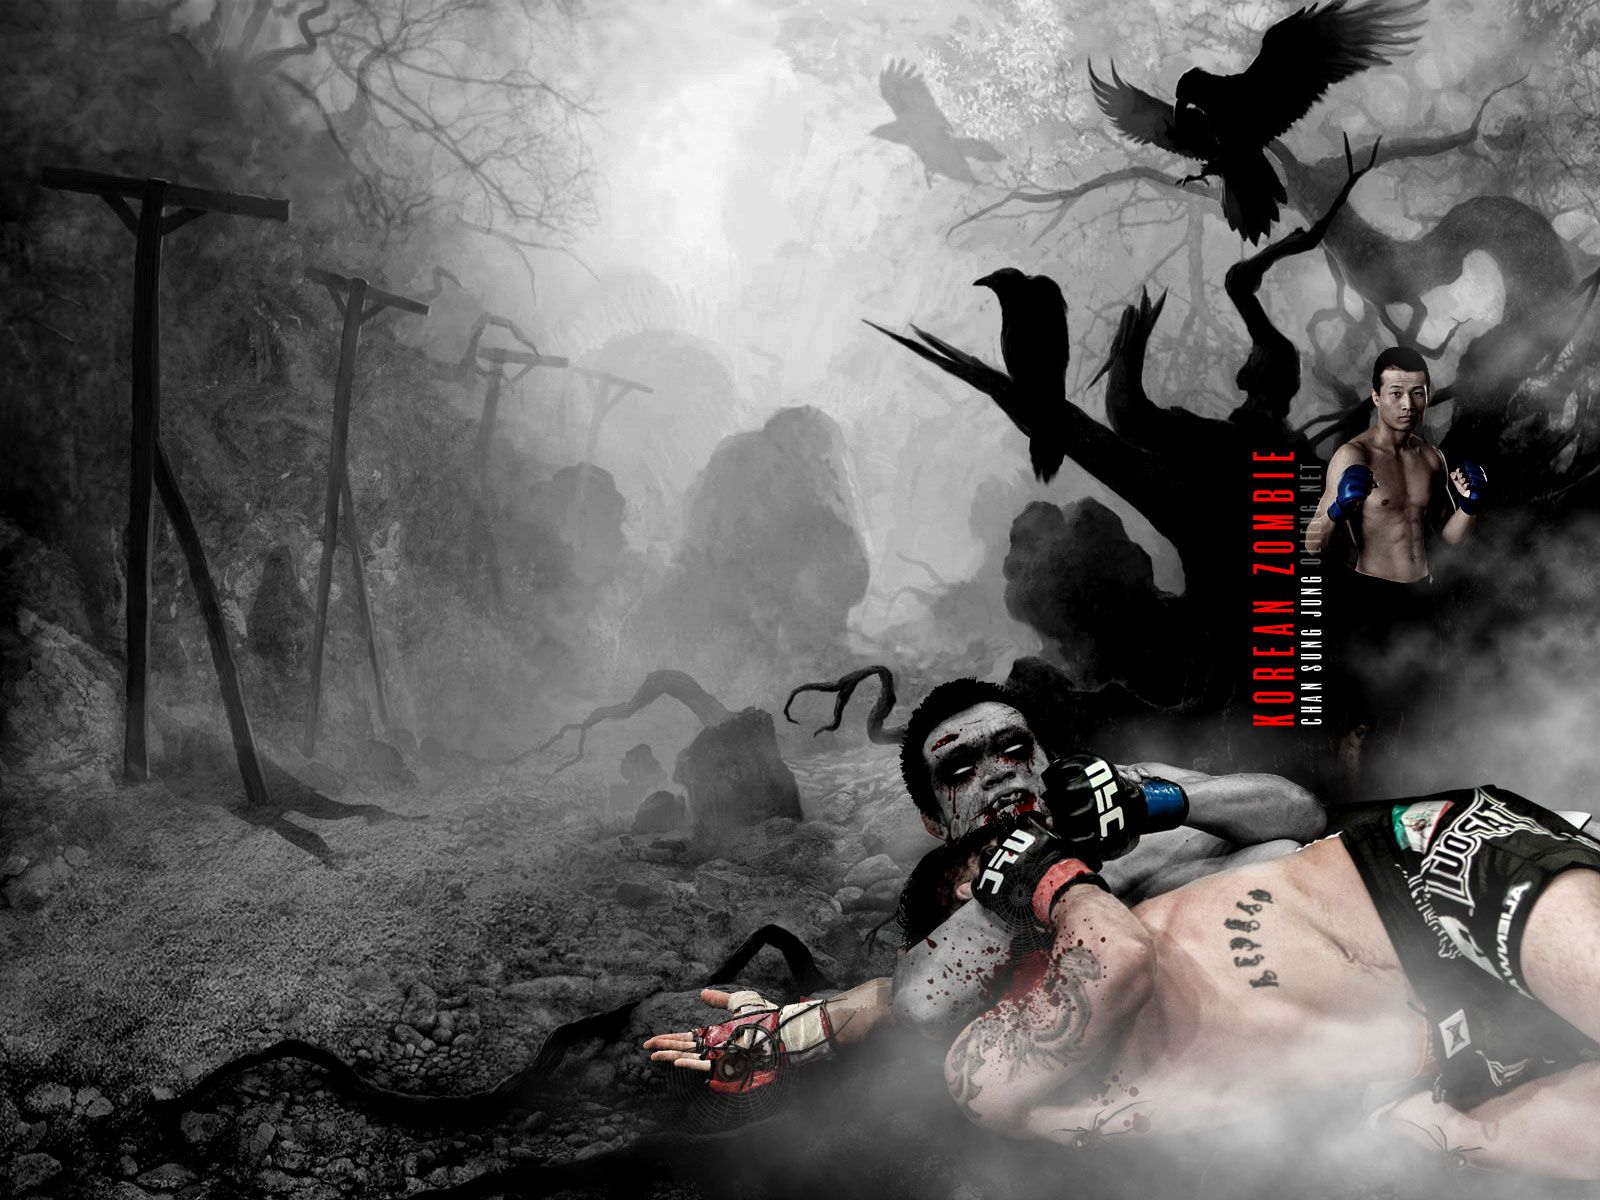 Behold The Korean Zombie Mma Ufc163 Zombie Wallpaper Ufc Mma